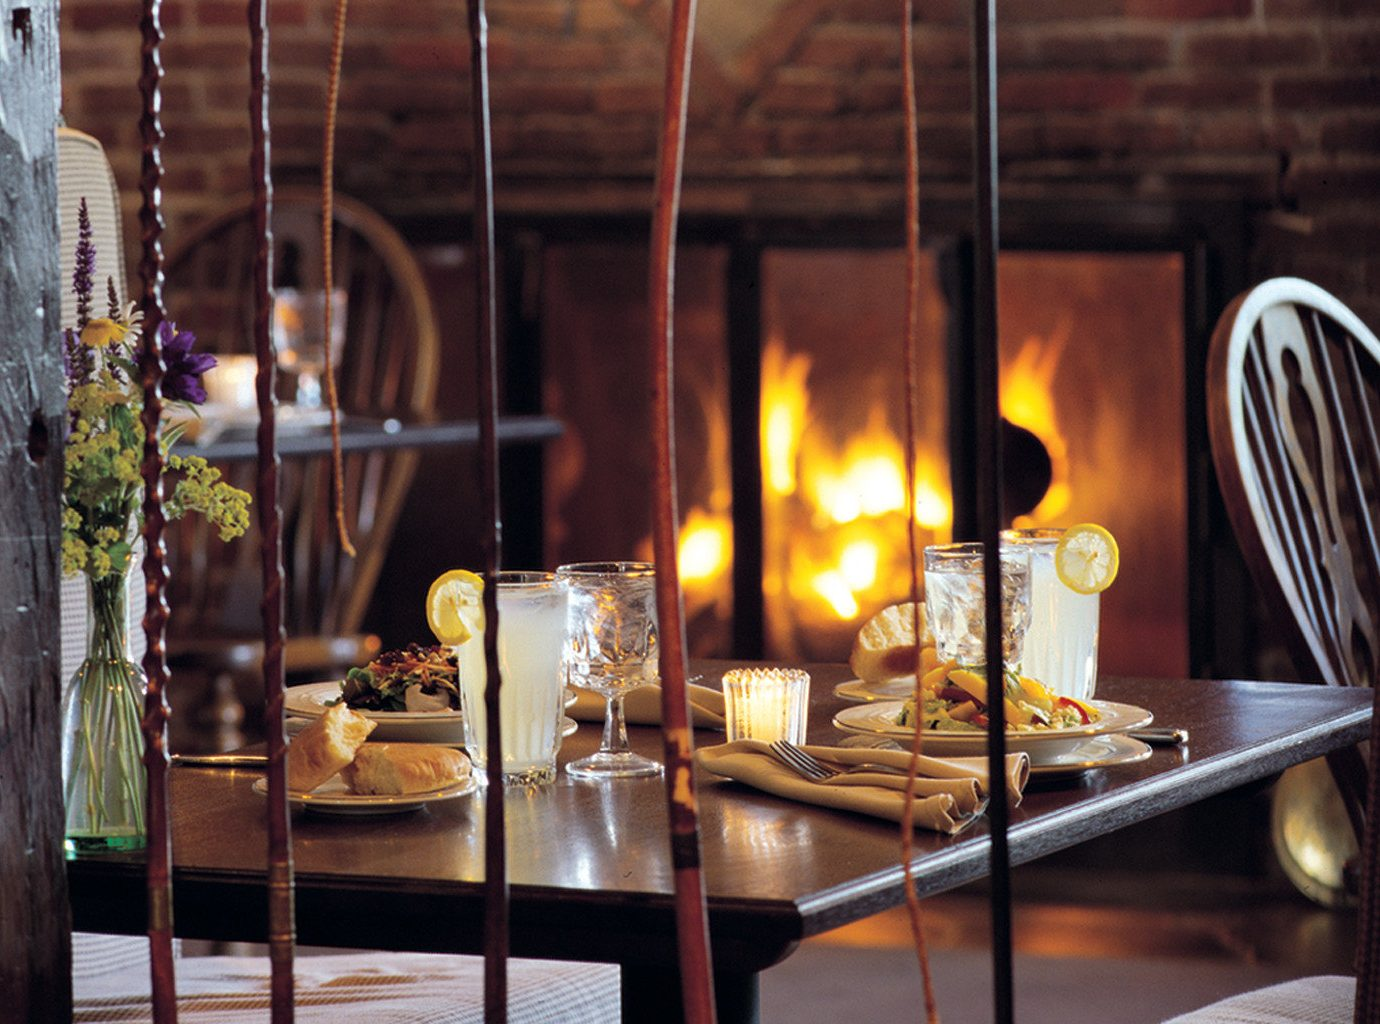 Bar Dining Drink Eat Fireplace Luxury restaurant lighting